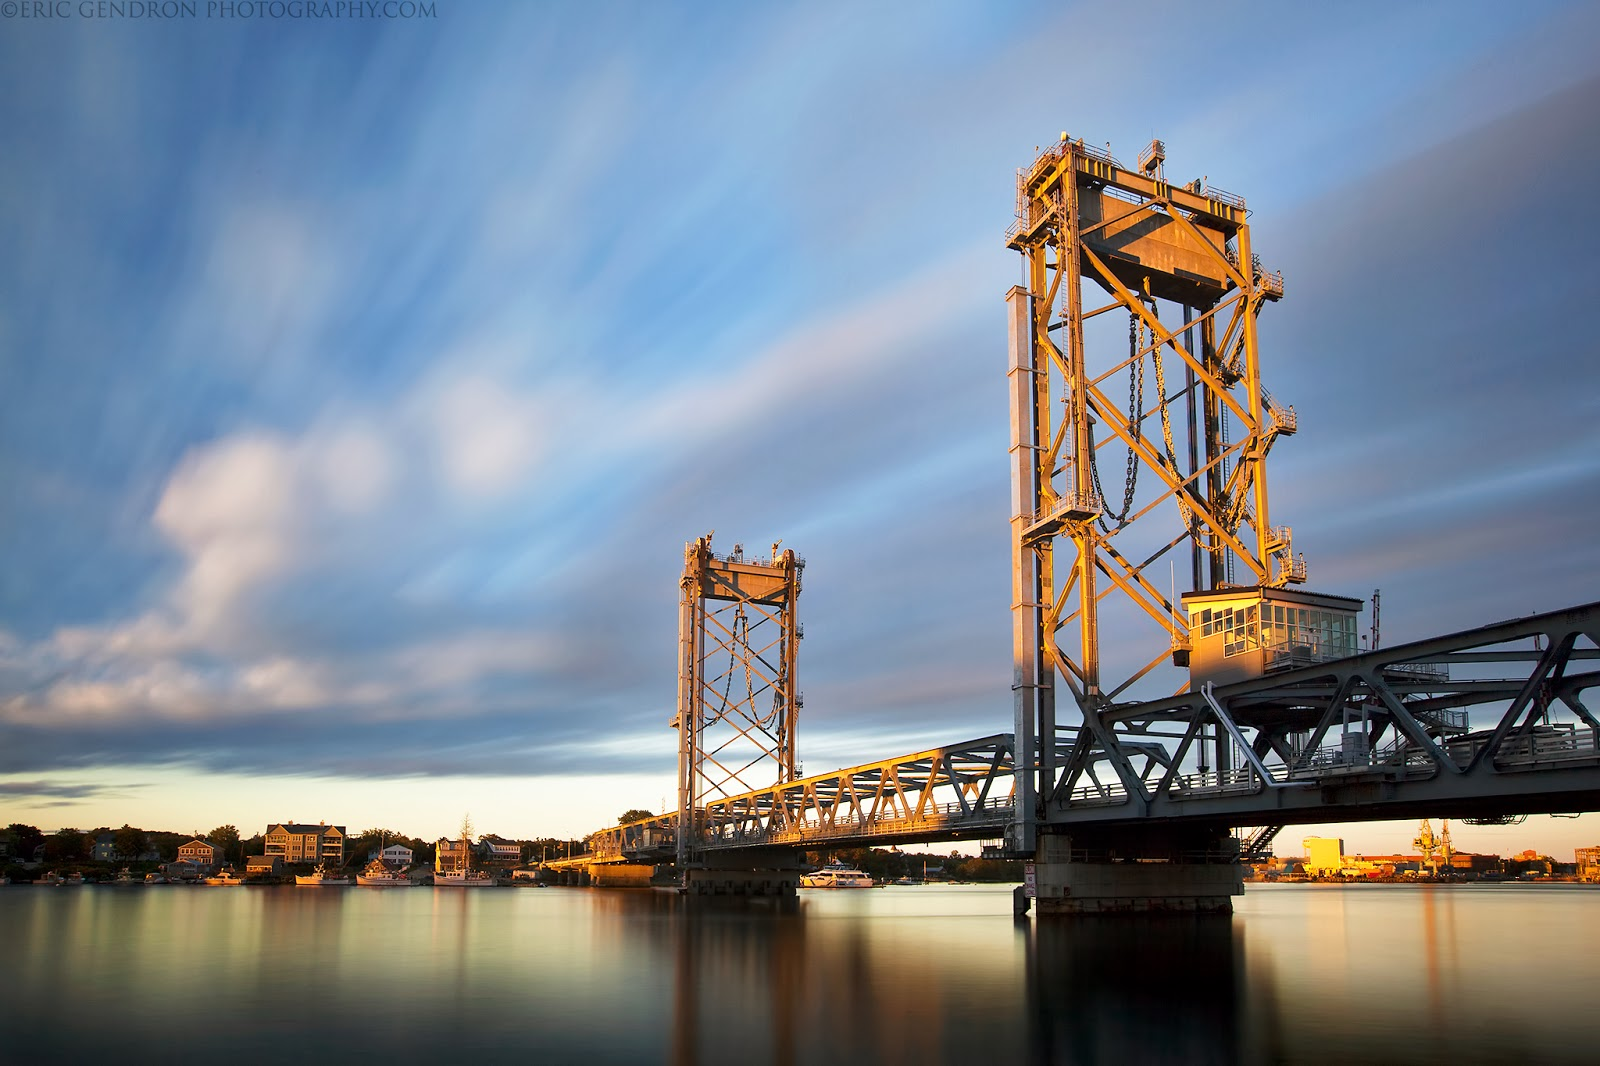 New Memorial Bridge in portsmouth nh